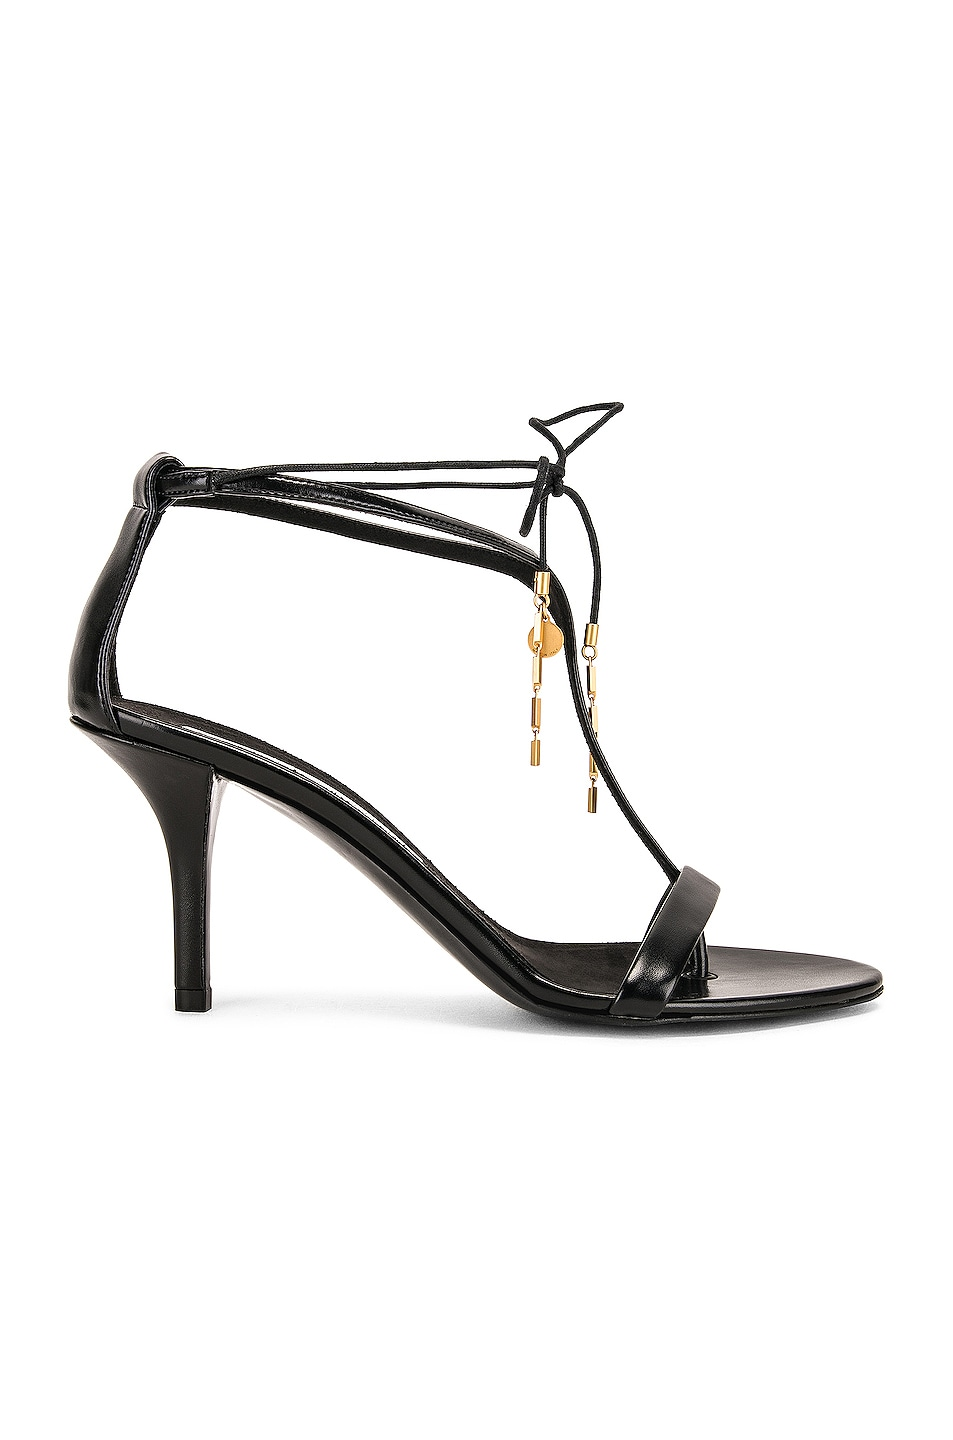 Image 1 of Stella McCartney Tie Heeled Sandals in Black & Black